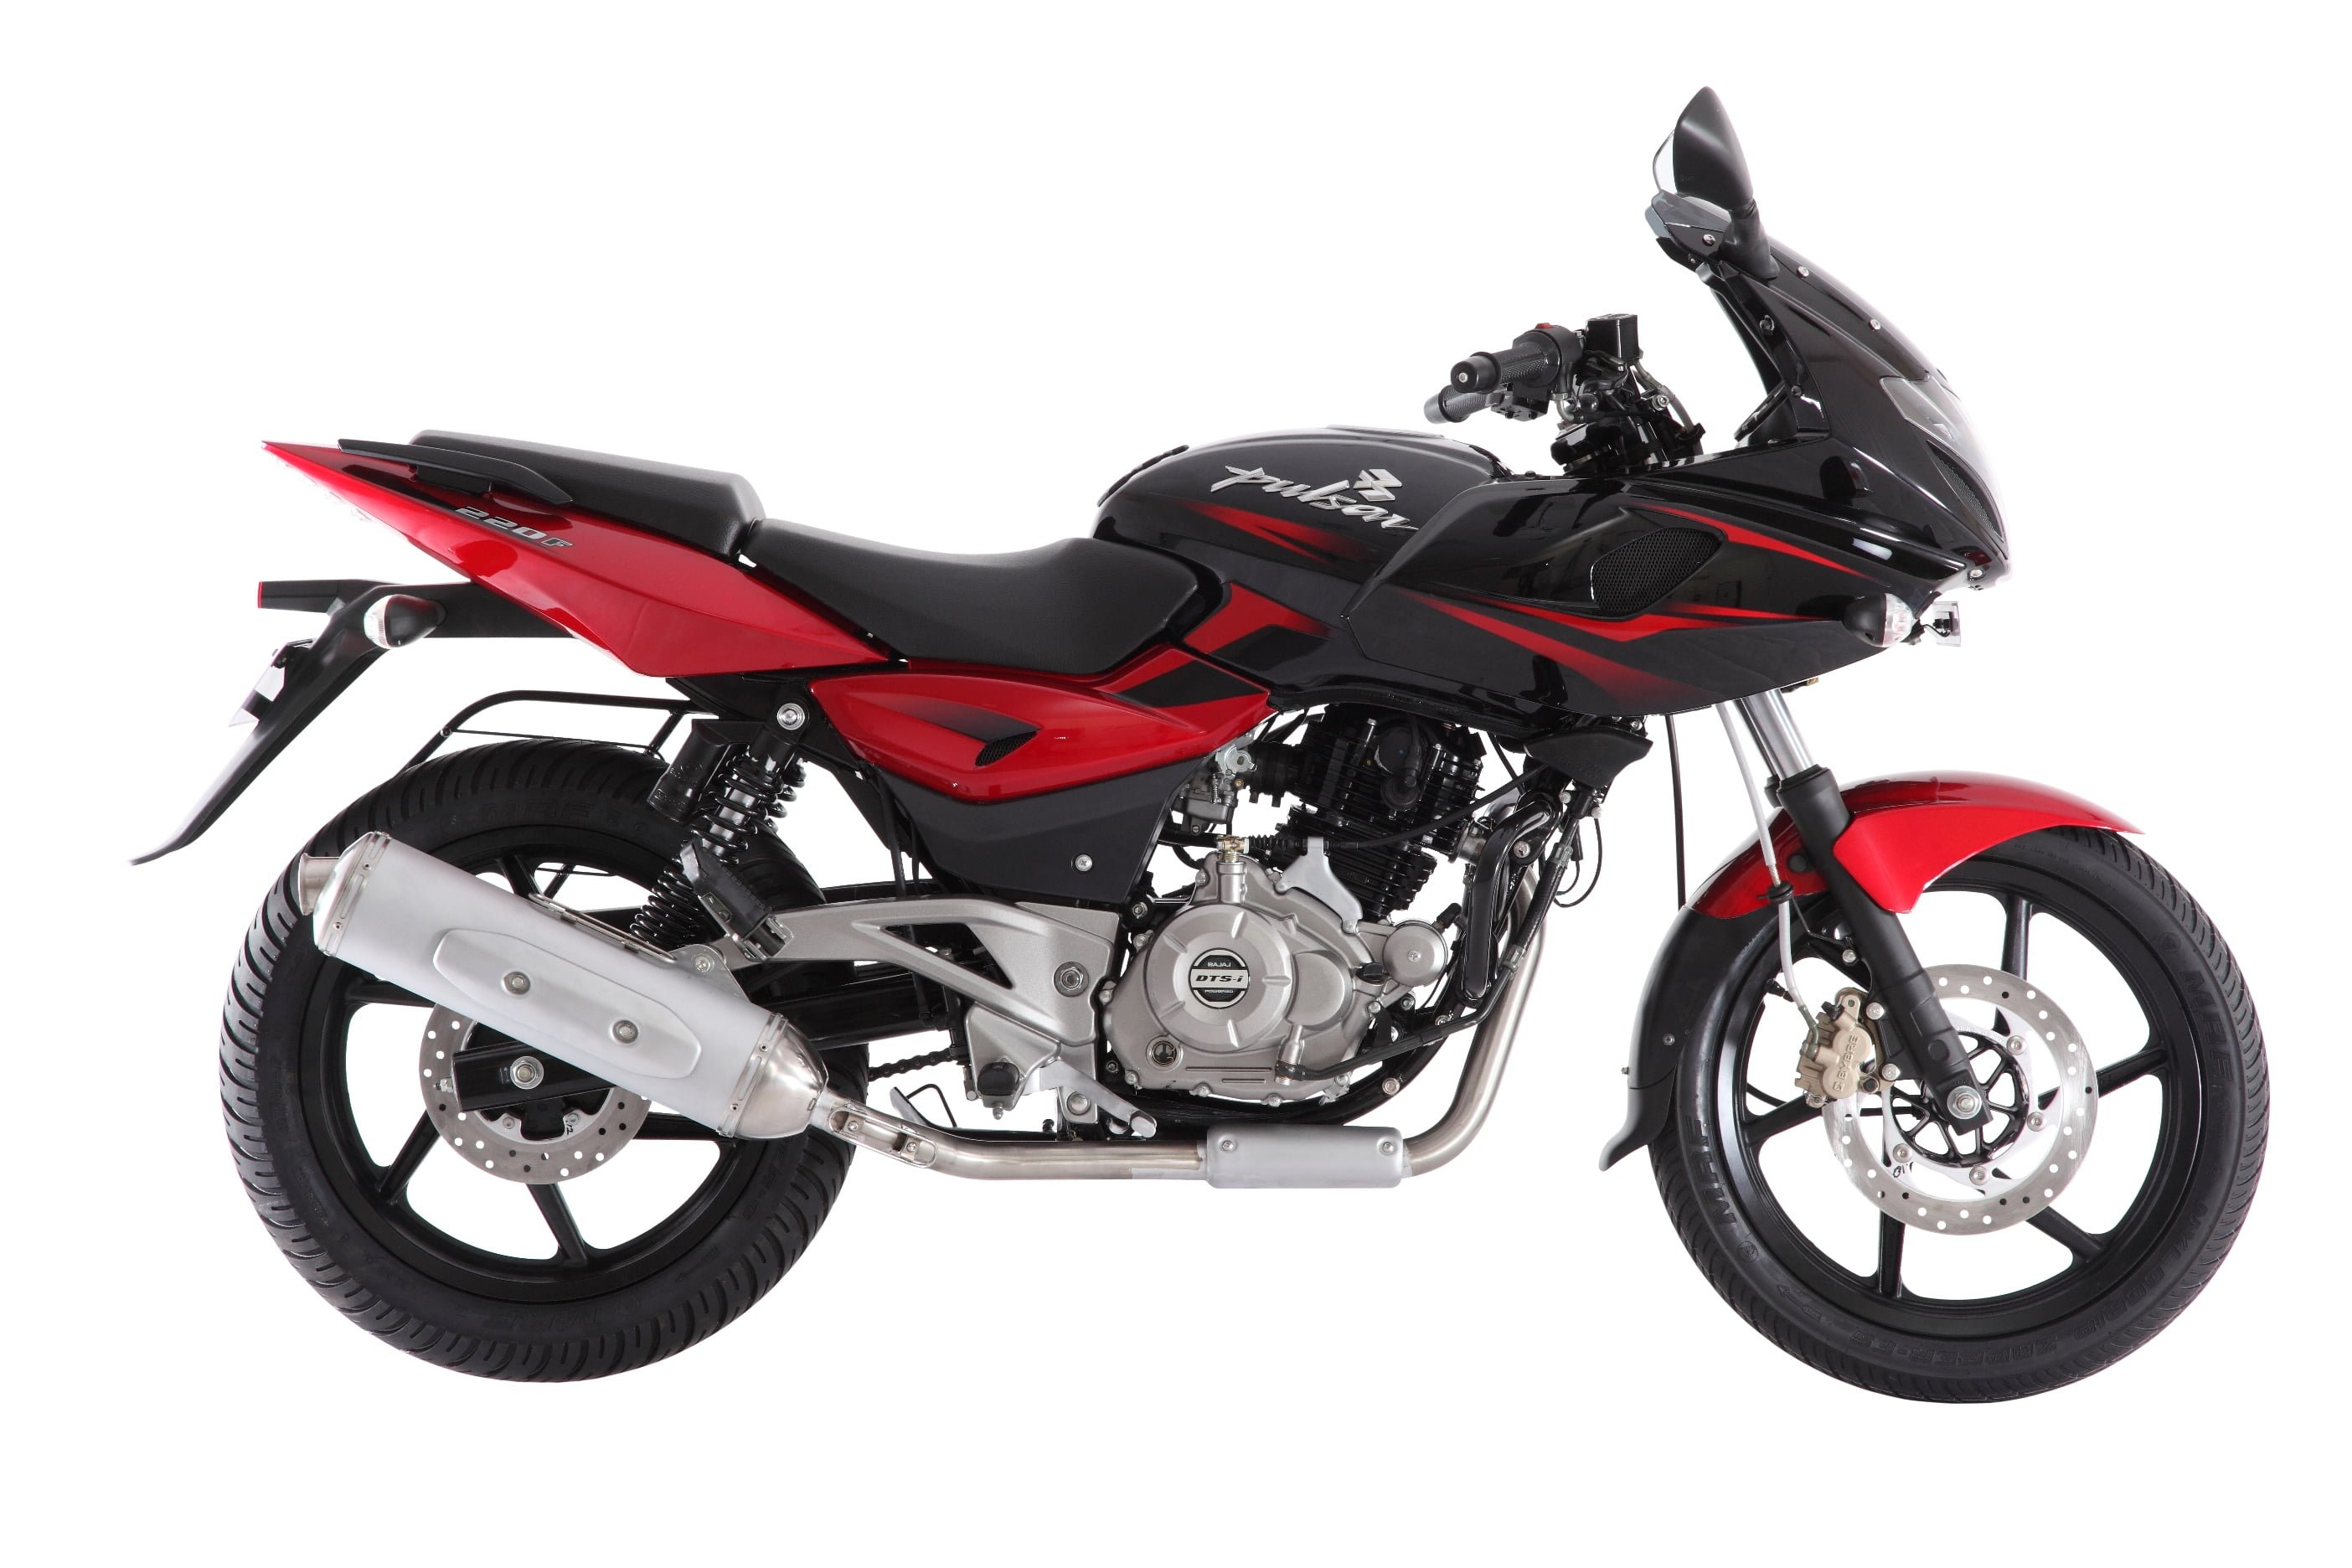 Pulsar Bike Price In Nepal | Autos Post